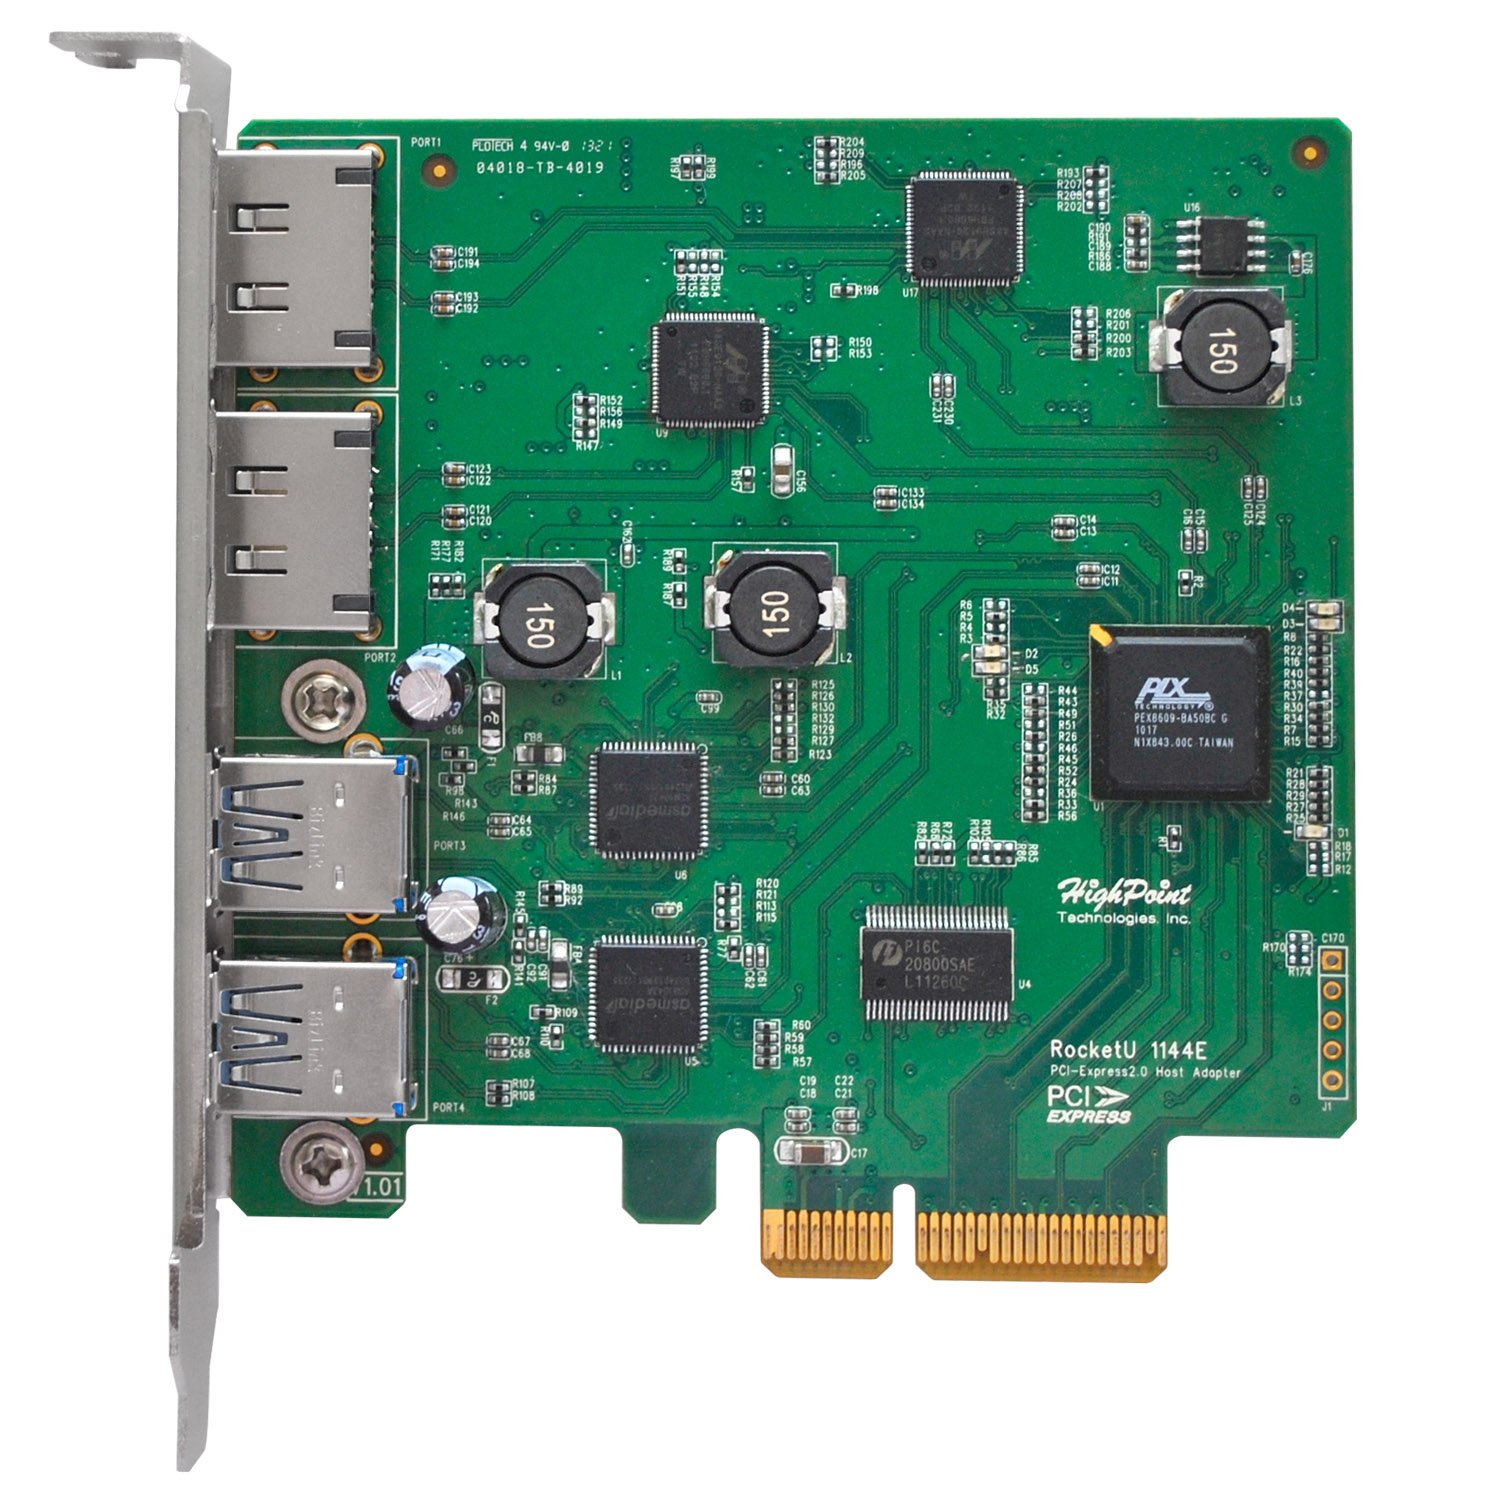 High Point Versatile Connectivity For 5Gb/s USB 3.0 HB Contr